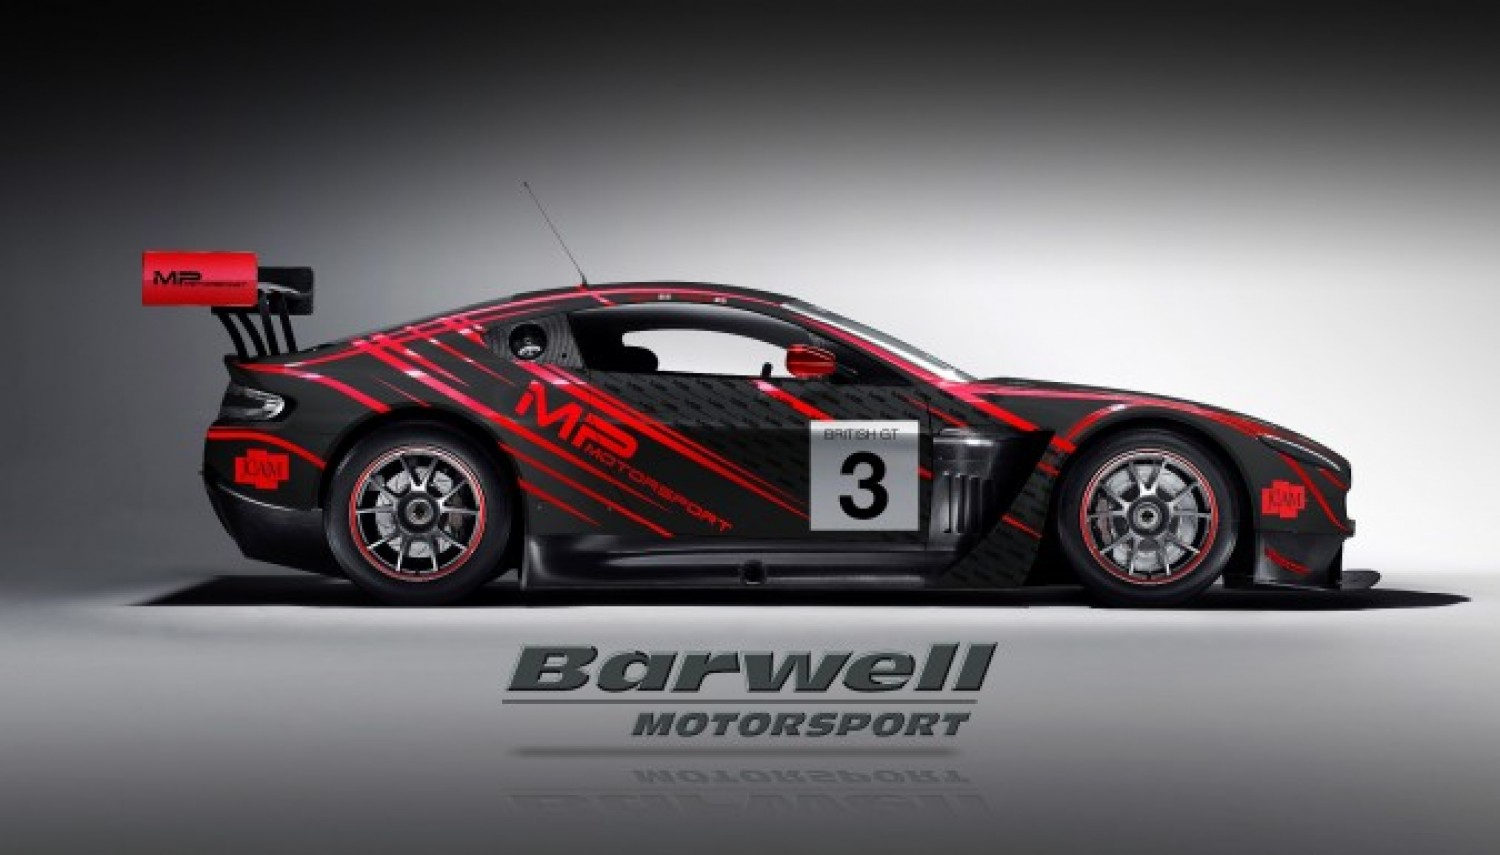 Barwell are back for Silverstone